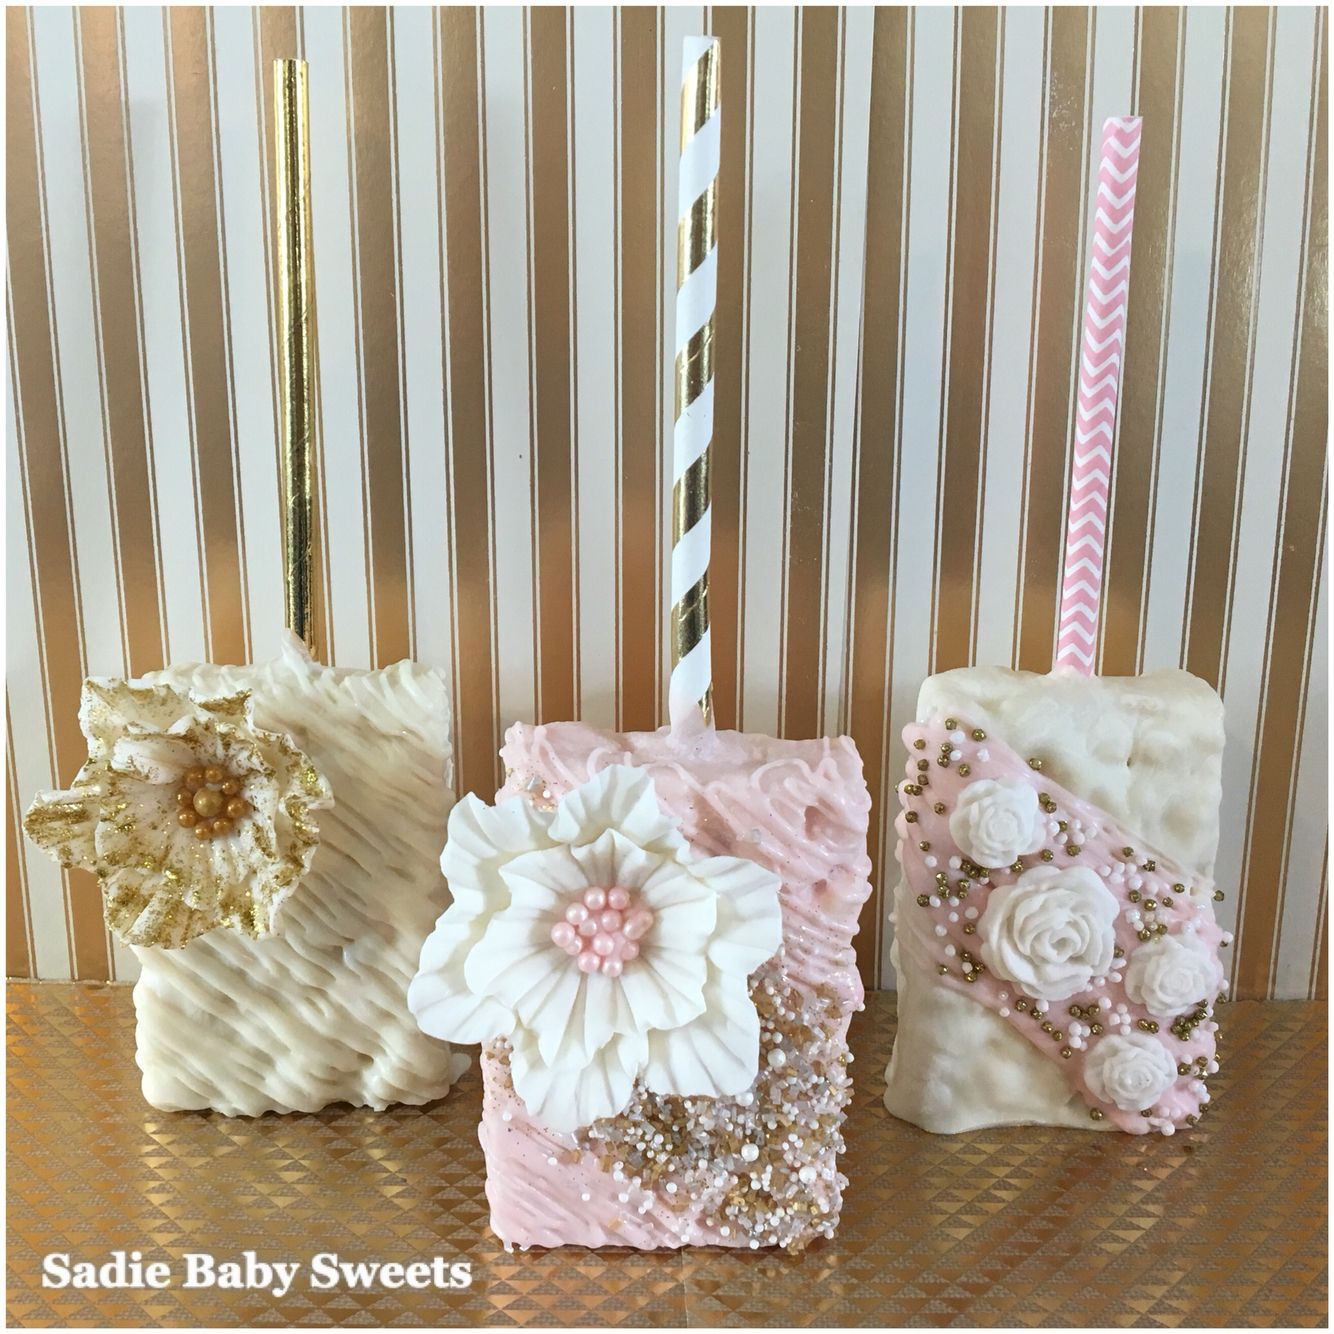 a9c075dd9eab Pretty Pink and Gold Wedding Chocolate Covered Rice Krispies Treats With  Fondant Flowers!